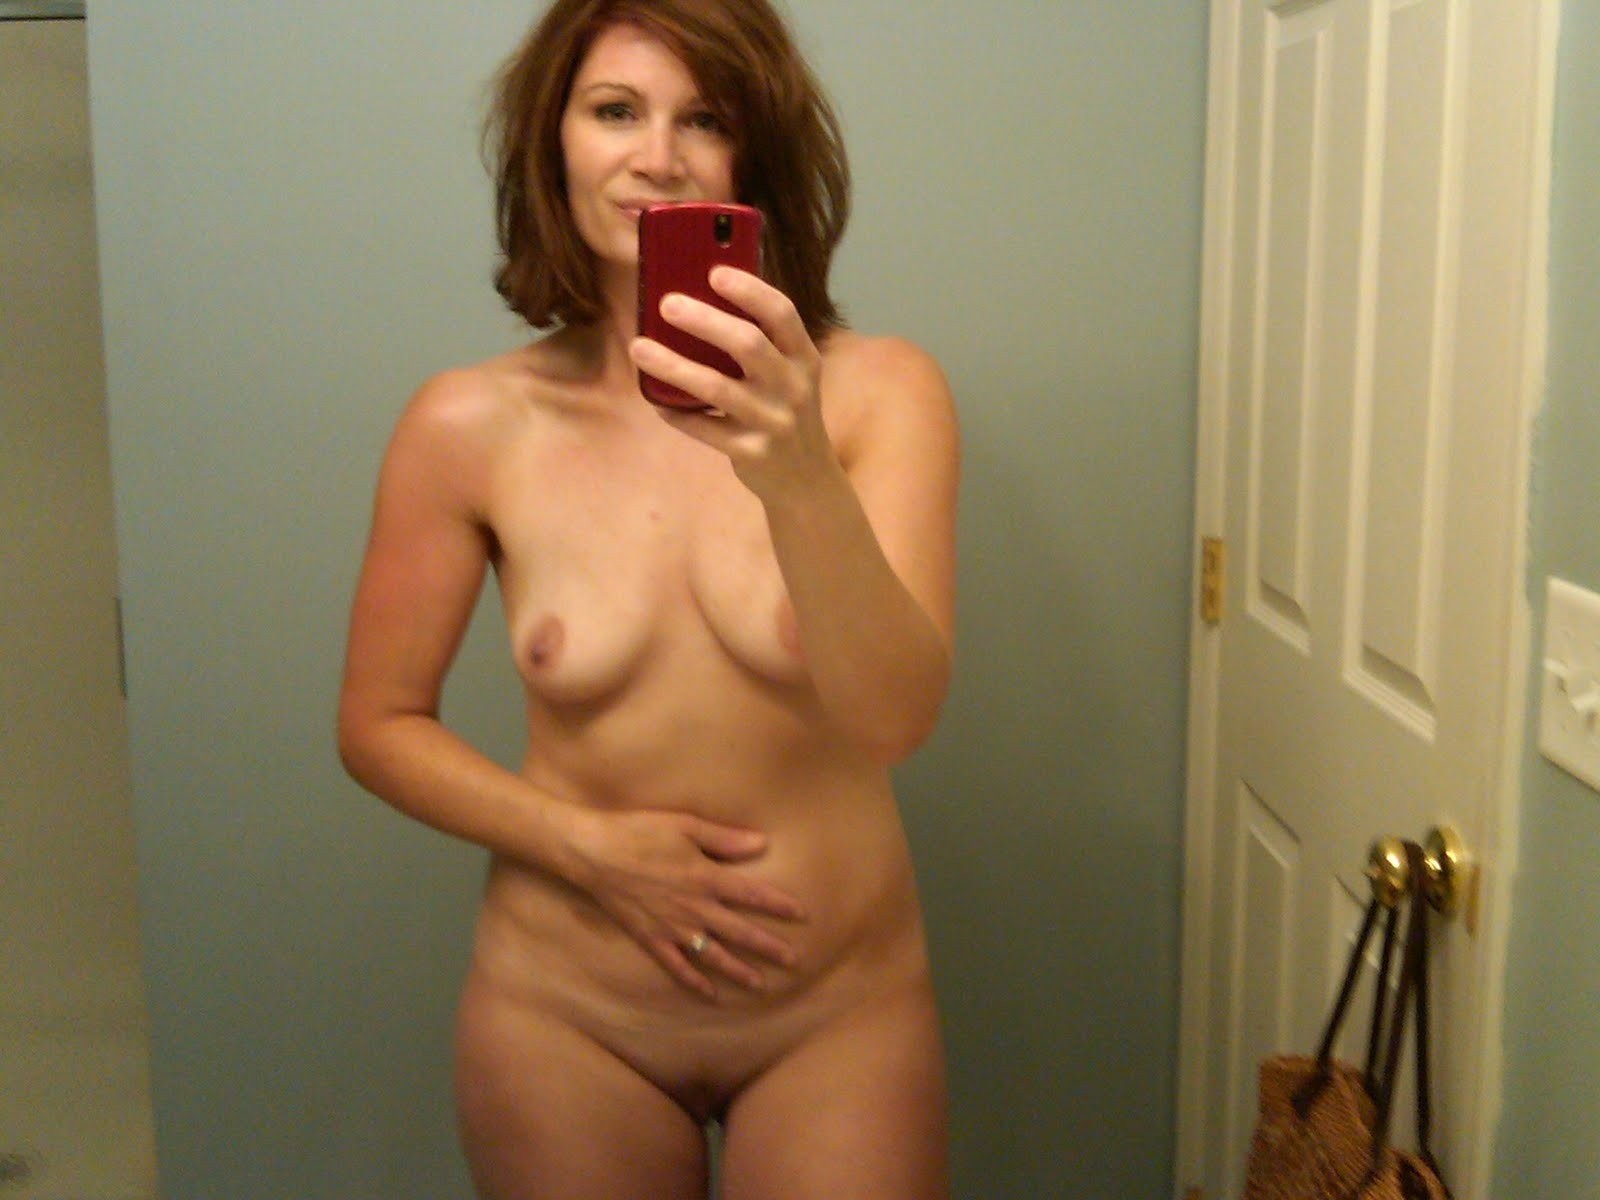 Moms Naughty Self Mirror Nude